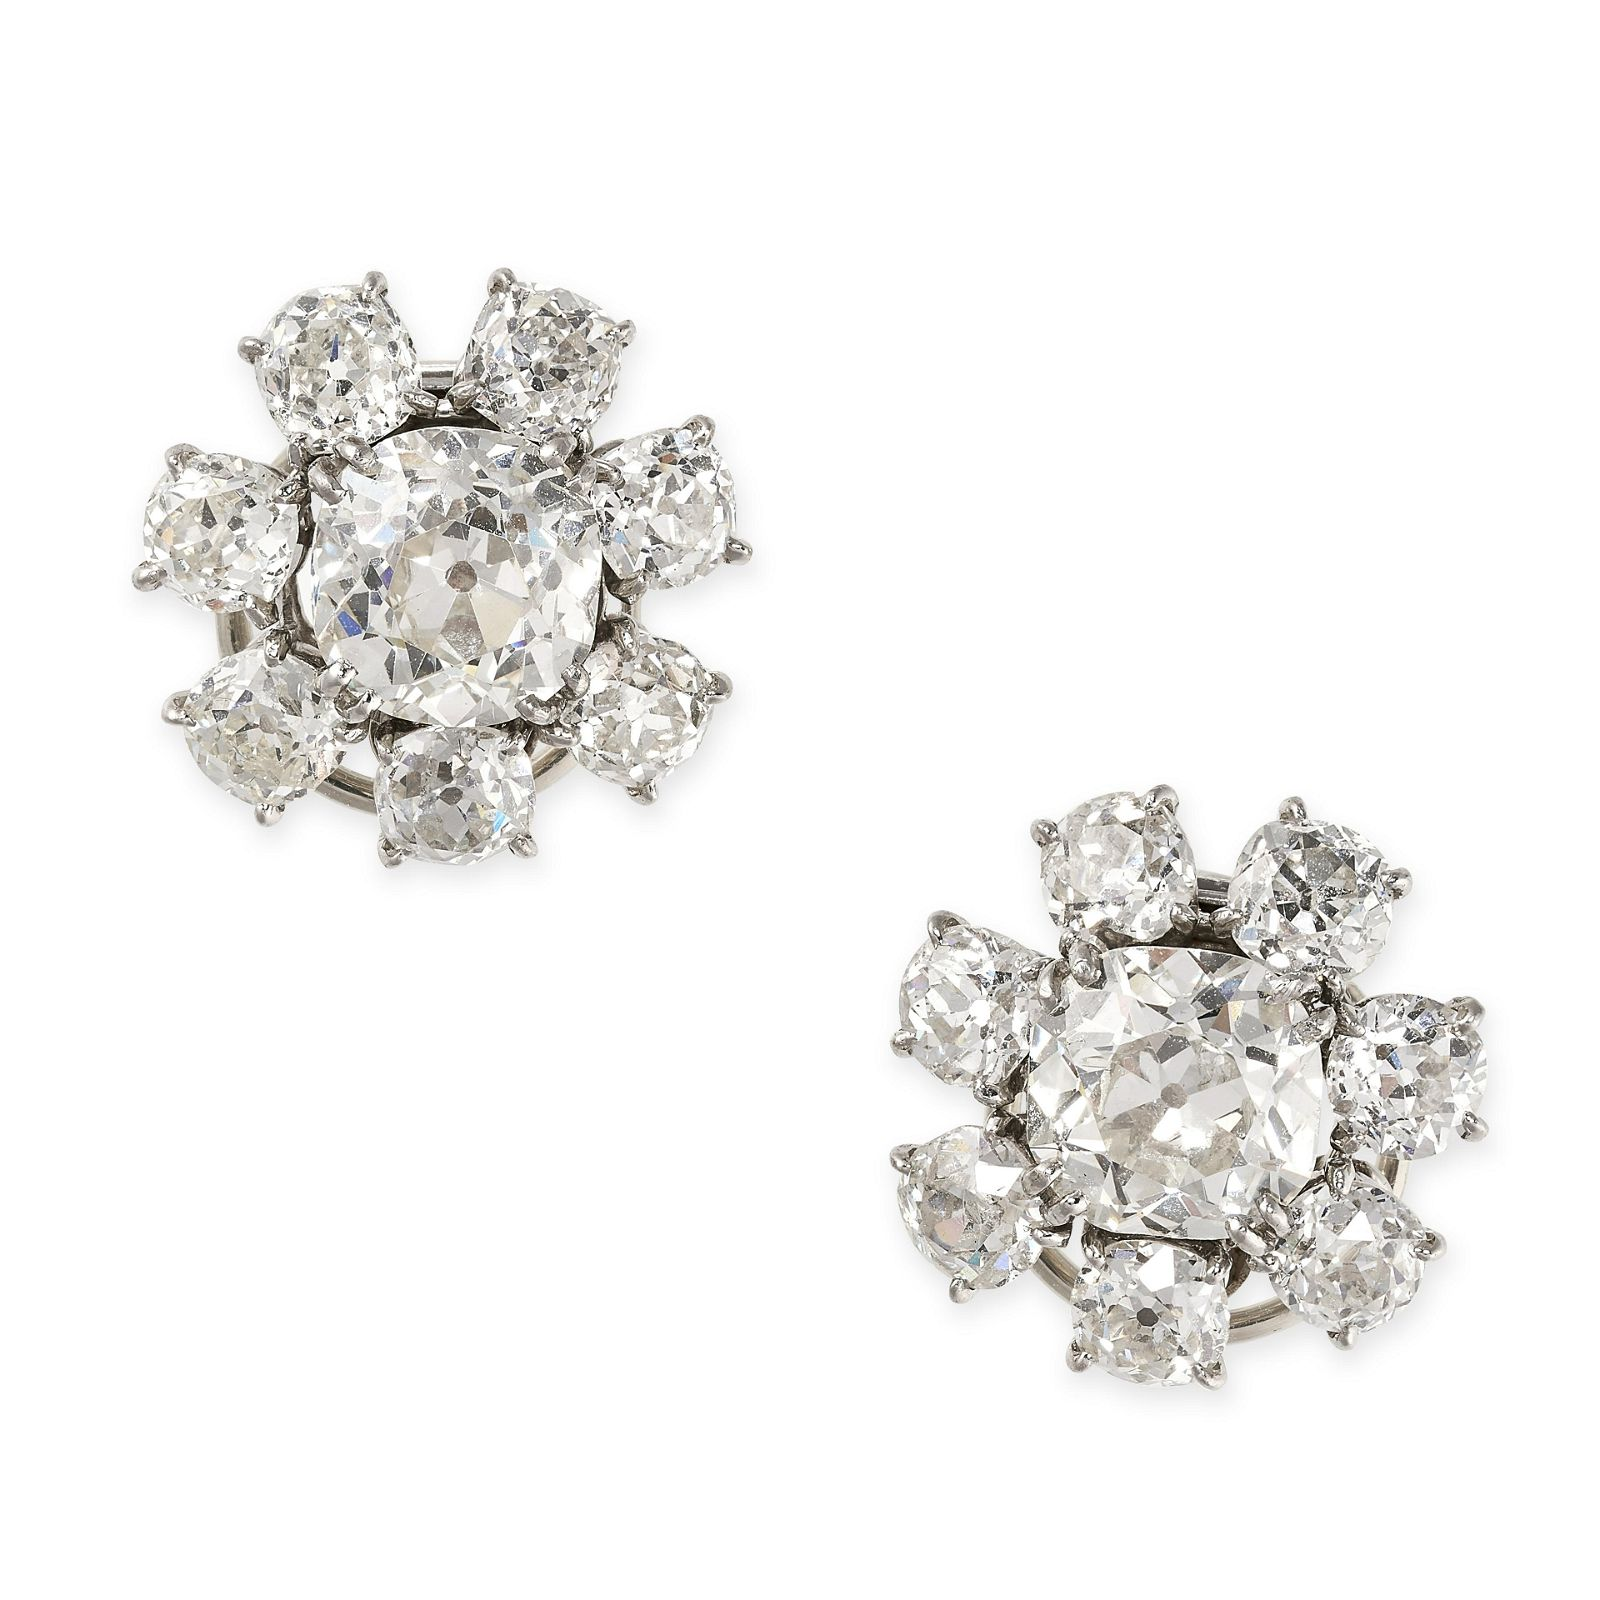 A PAIR OF DIAMOND CLUSTER CLIP EARRINGS, CHAUMET in